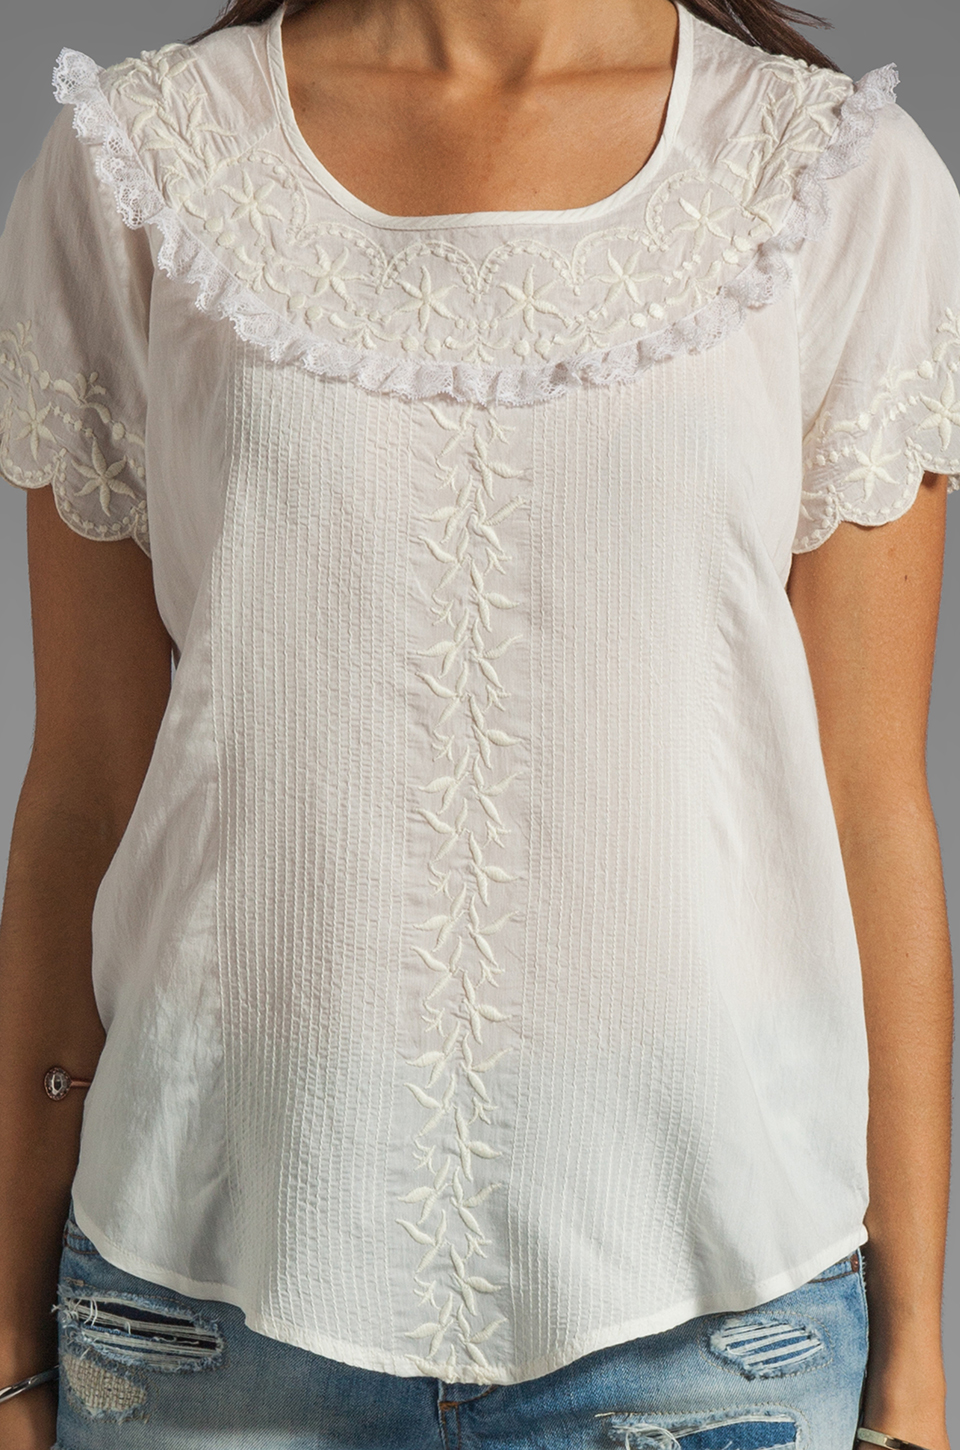 Beyond Vintage Silk Short Sleeve Shirt with Embroidery in Ivory